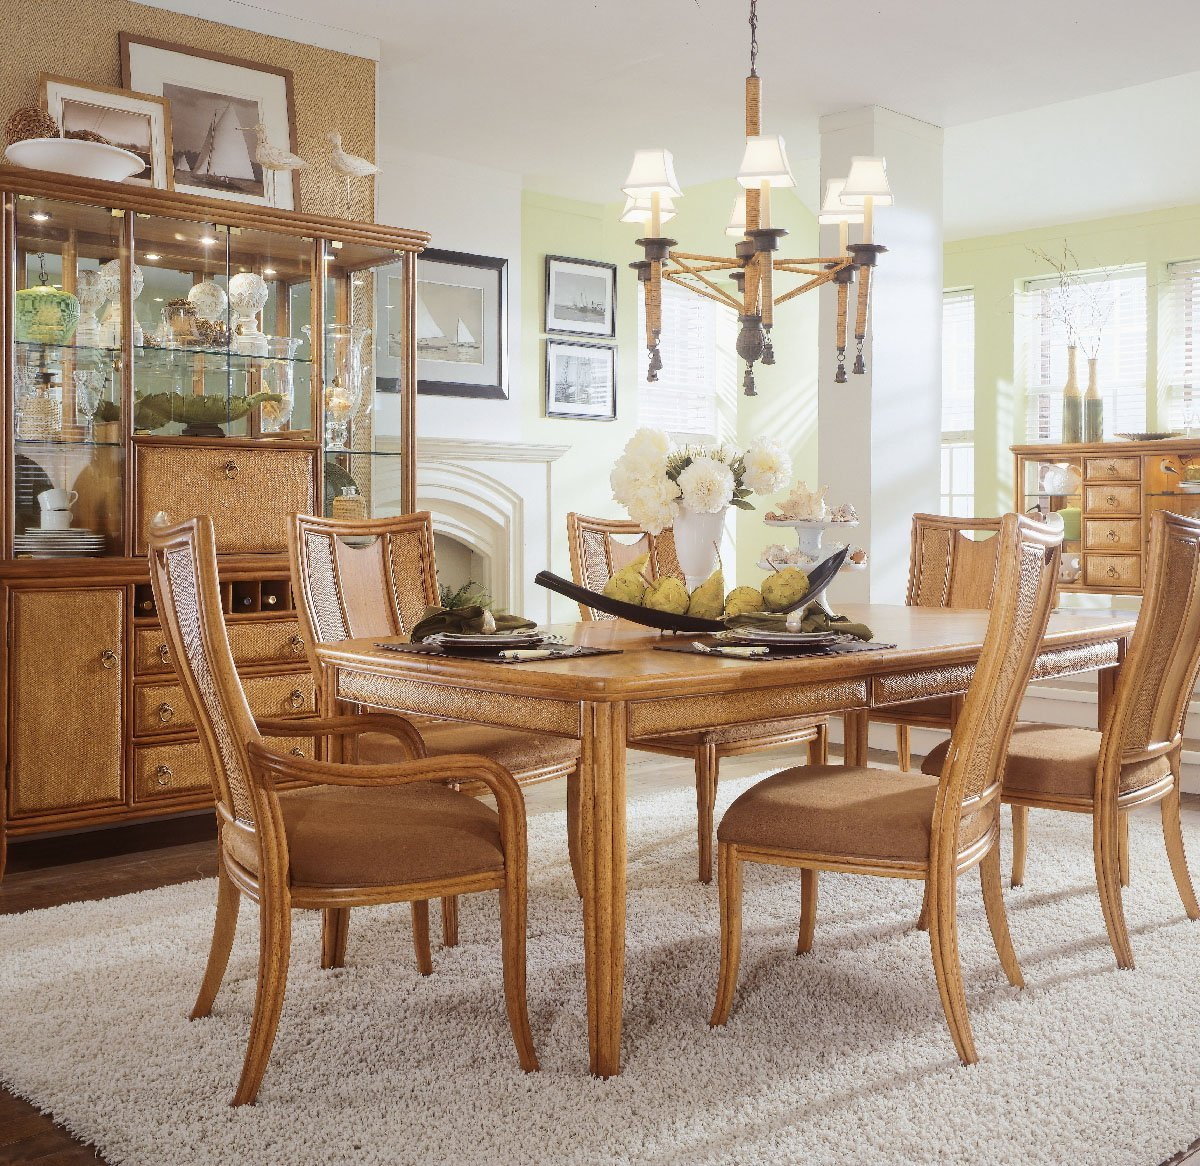 oak chairs and dining table centerpieces for enchanting dining